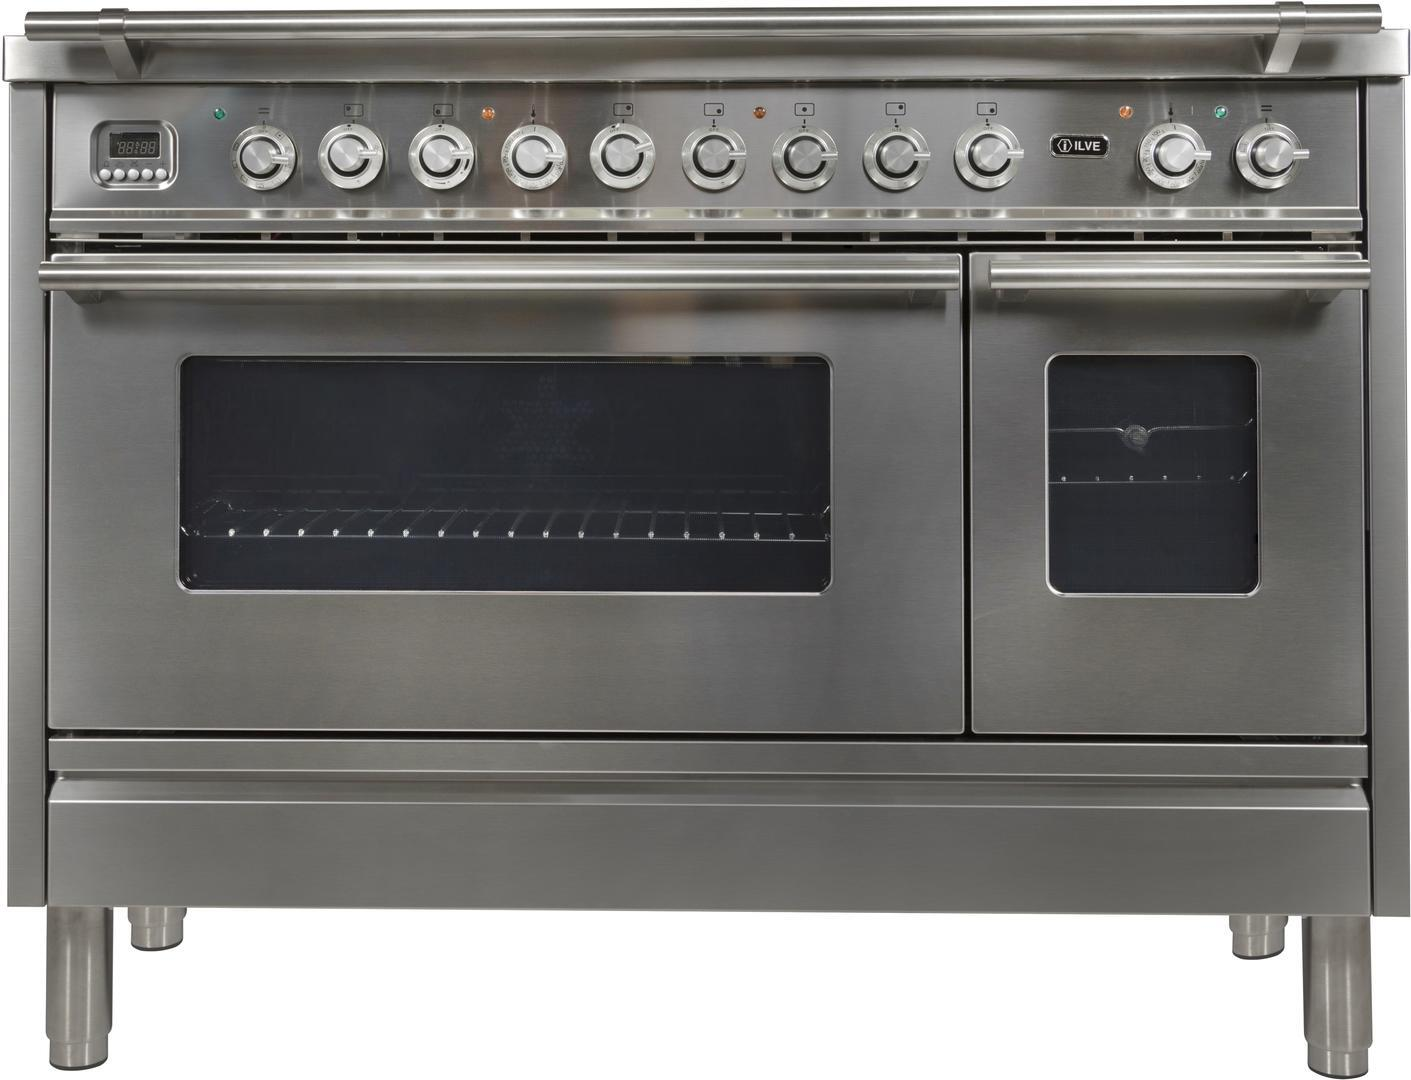 Ilve Professional Plus UPW120FDMPI Freestanding Dual Fuel Range Stainless Steel, Front View